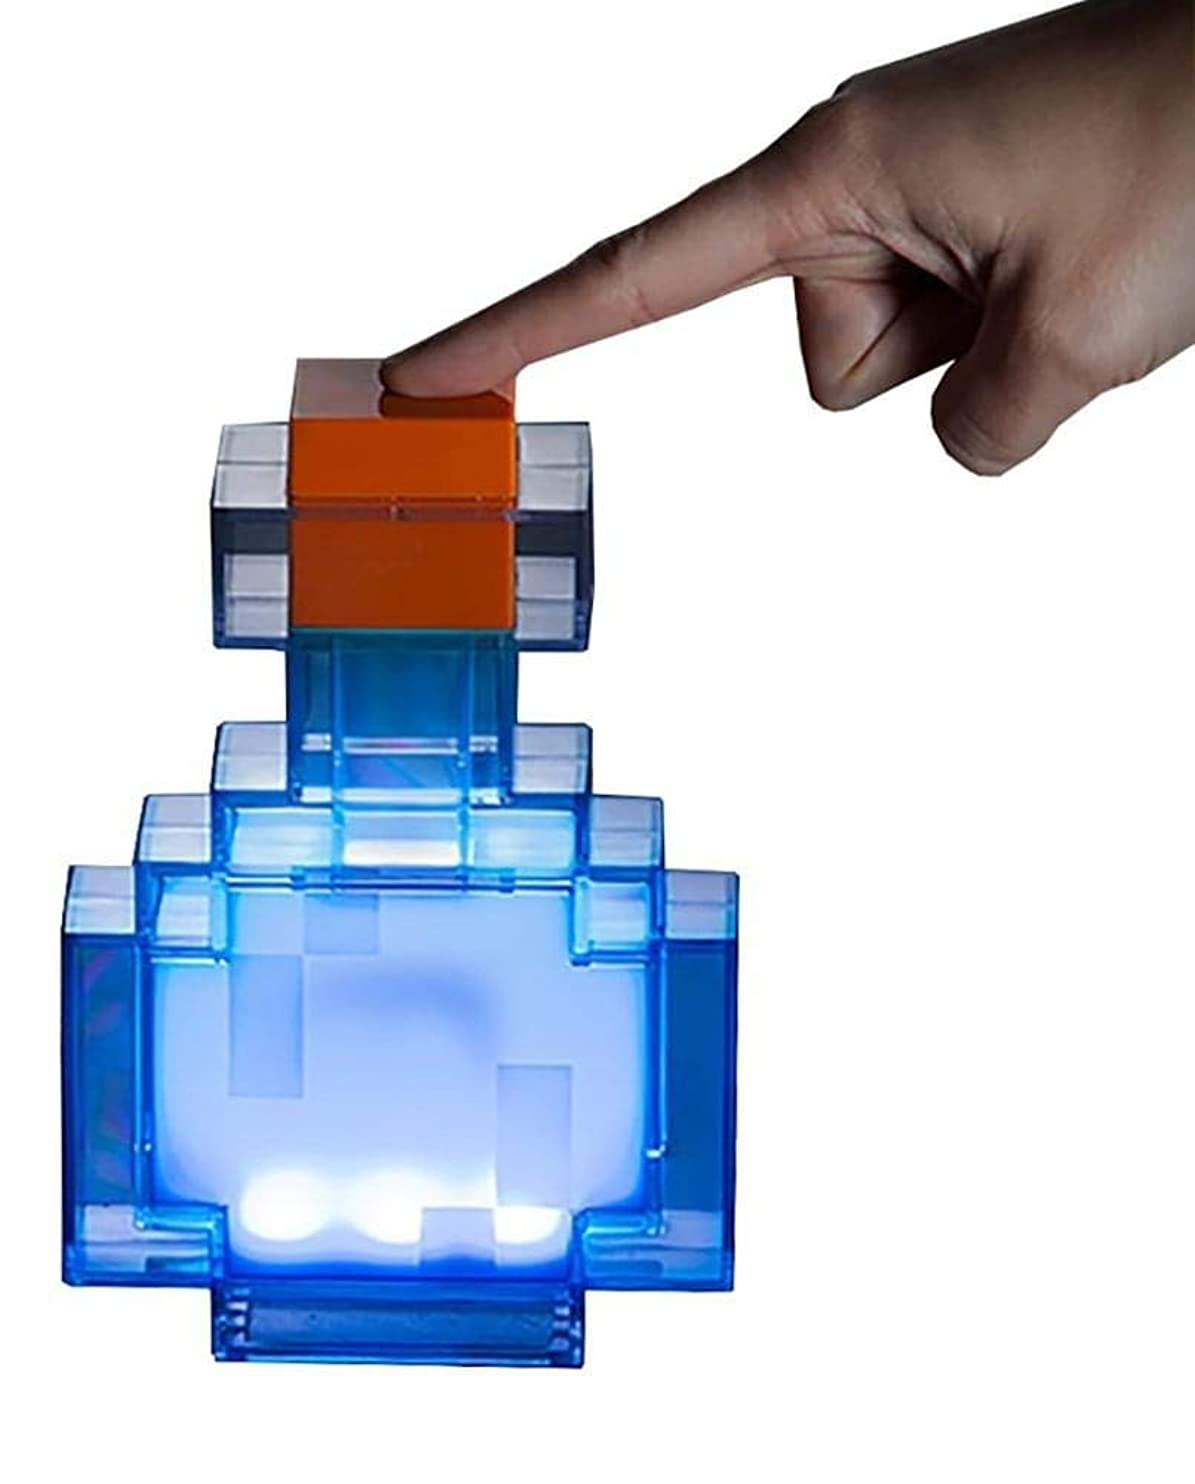 ThinkGeek Minecraft Color Changing Potion Bottle - Lights Up and Switches Between 8 Different Colors - Officially Licensed Minecraft Toys ayjtadsqchp91